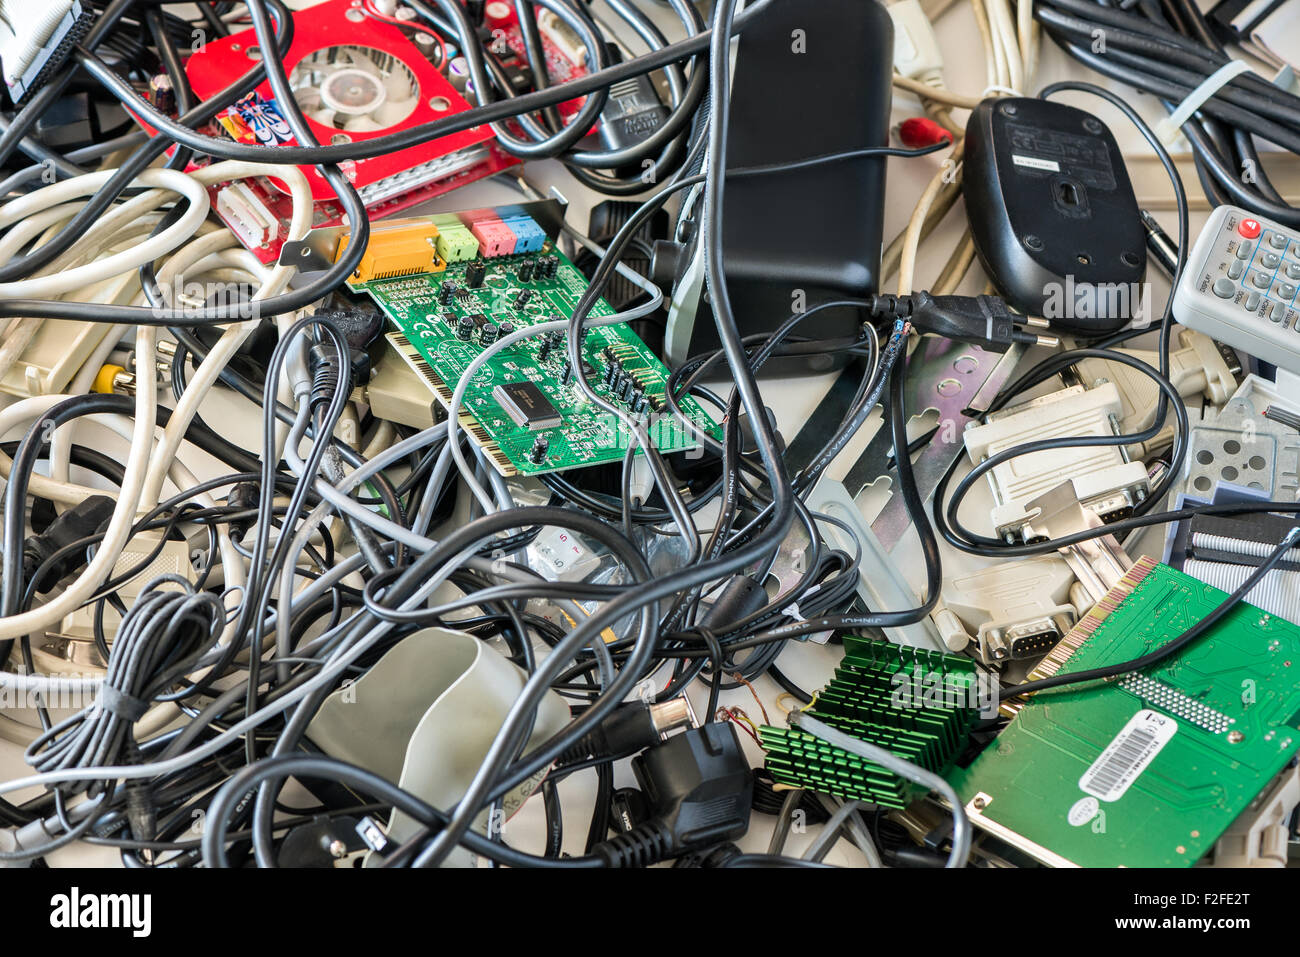 Computer Cables Stock Photos & Computer Cables Stock Images - Alamy